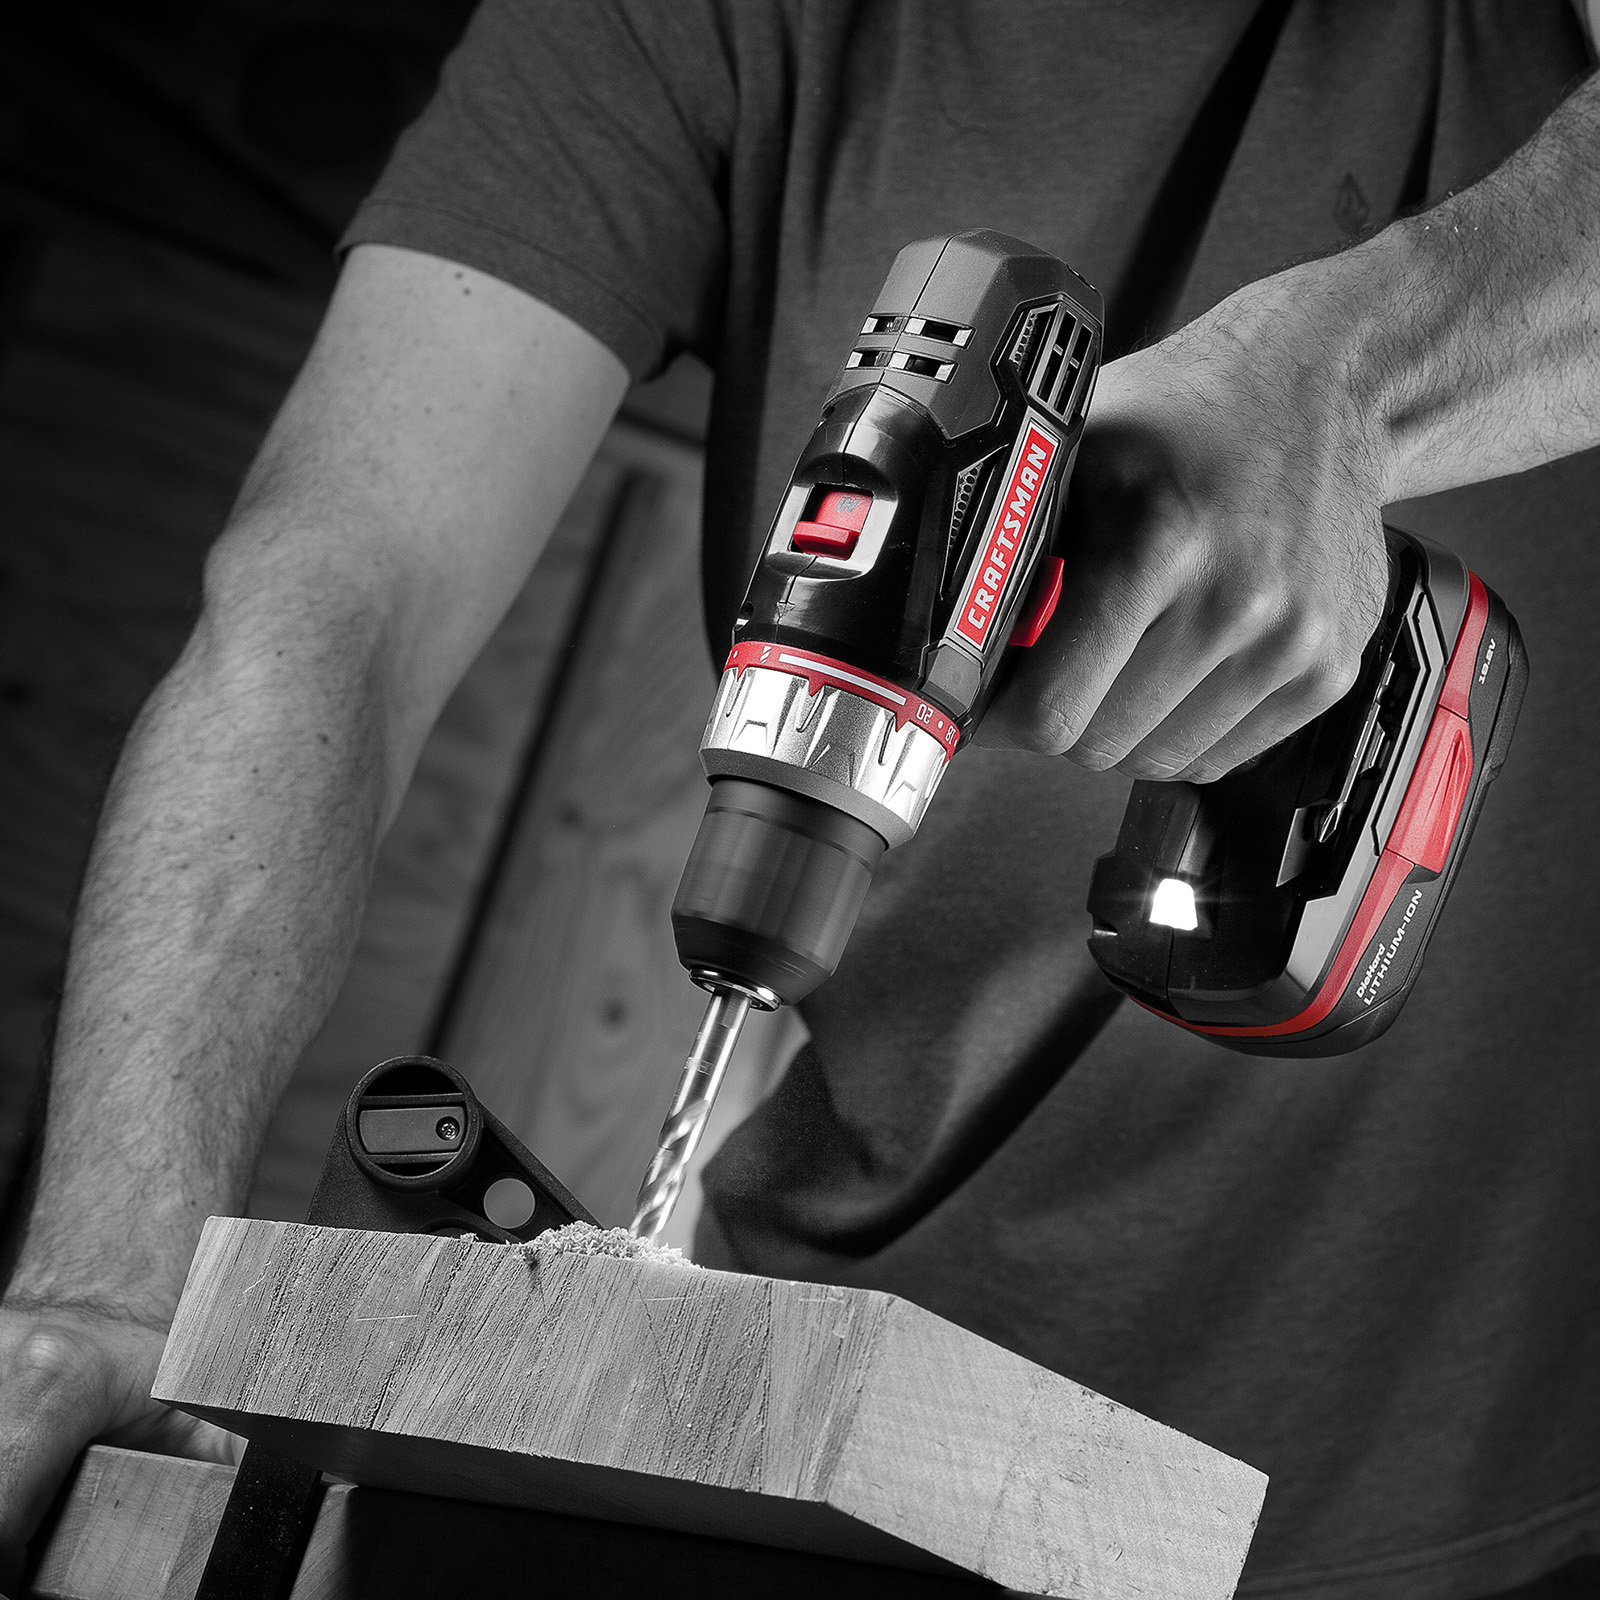 Craftsman 19.2 Volt Drill Driver with 2 Lithium-Ion Batteries